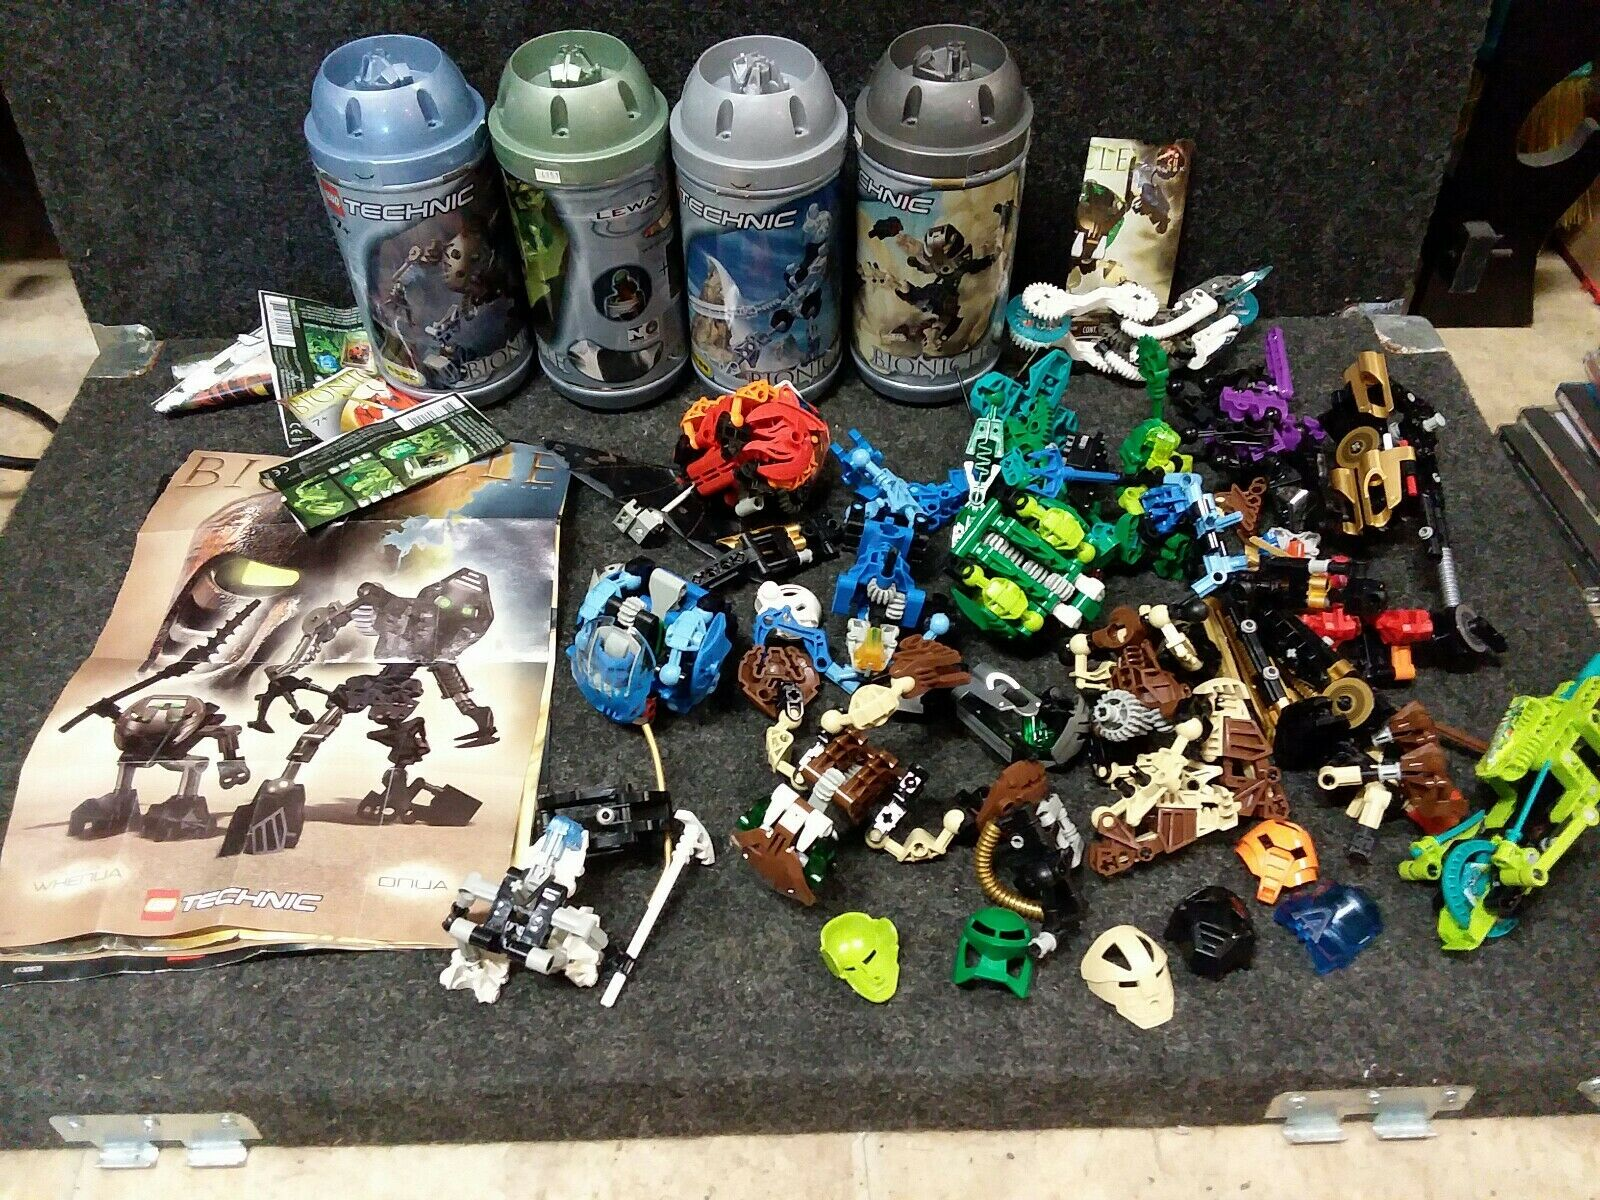 Lego Bionicle Bionicle Bionicle Huge Lot Masks Manuals Parts Canisters cf6808